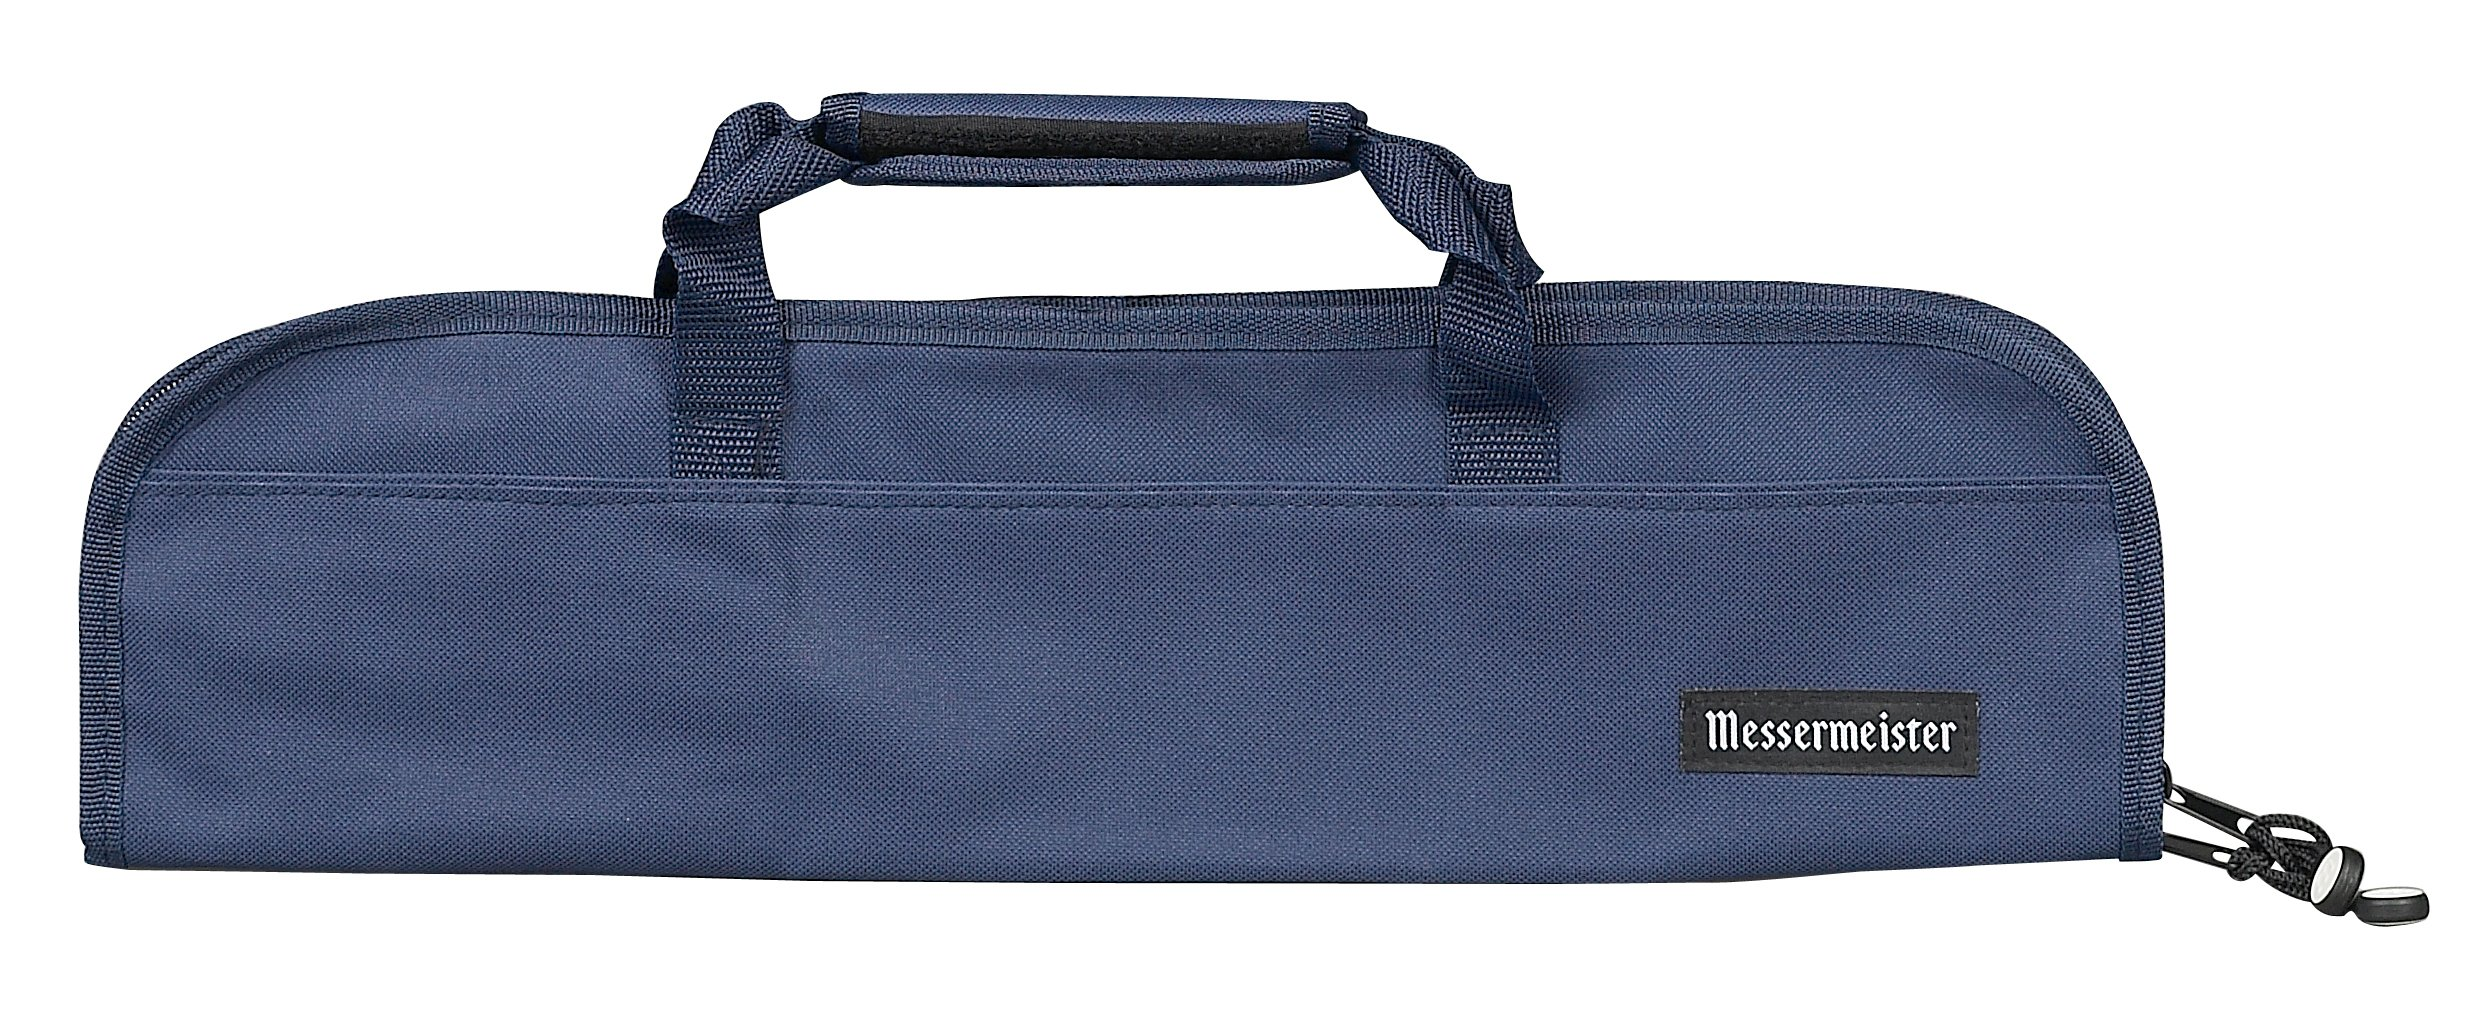 Messermeister 5-Pocket Heavy Duty Nylon Padded Knife Roll, Luggage Grade and Water Resistant, Navy